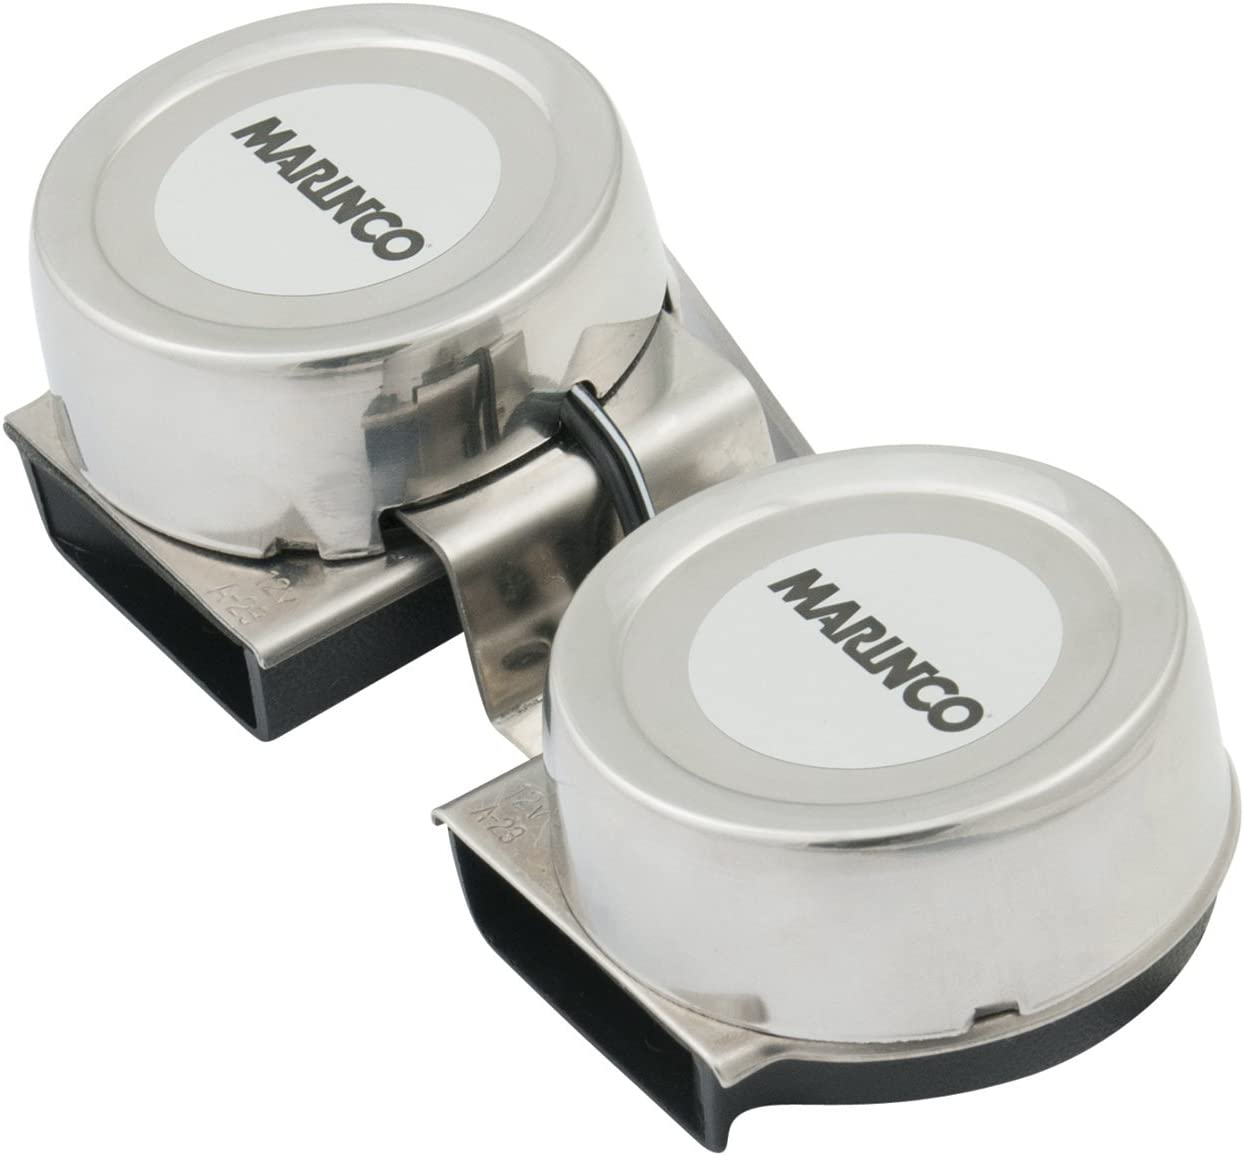 AFI 10001 Marinco Mini Twin Electric Horn : Boat Horns : Sports & Outdoors